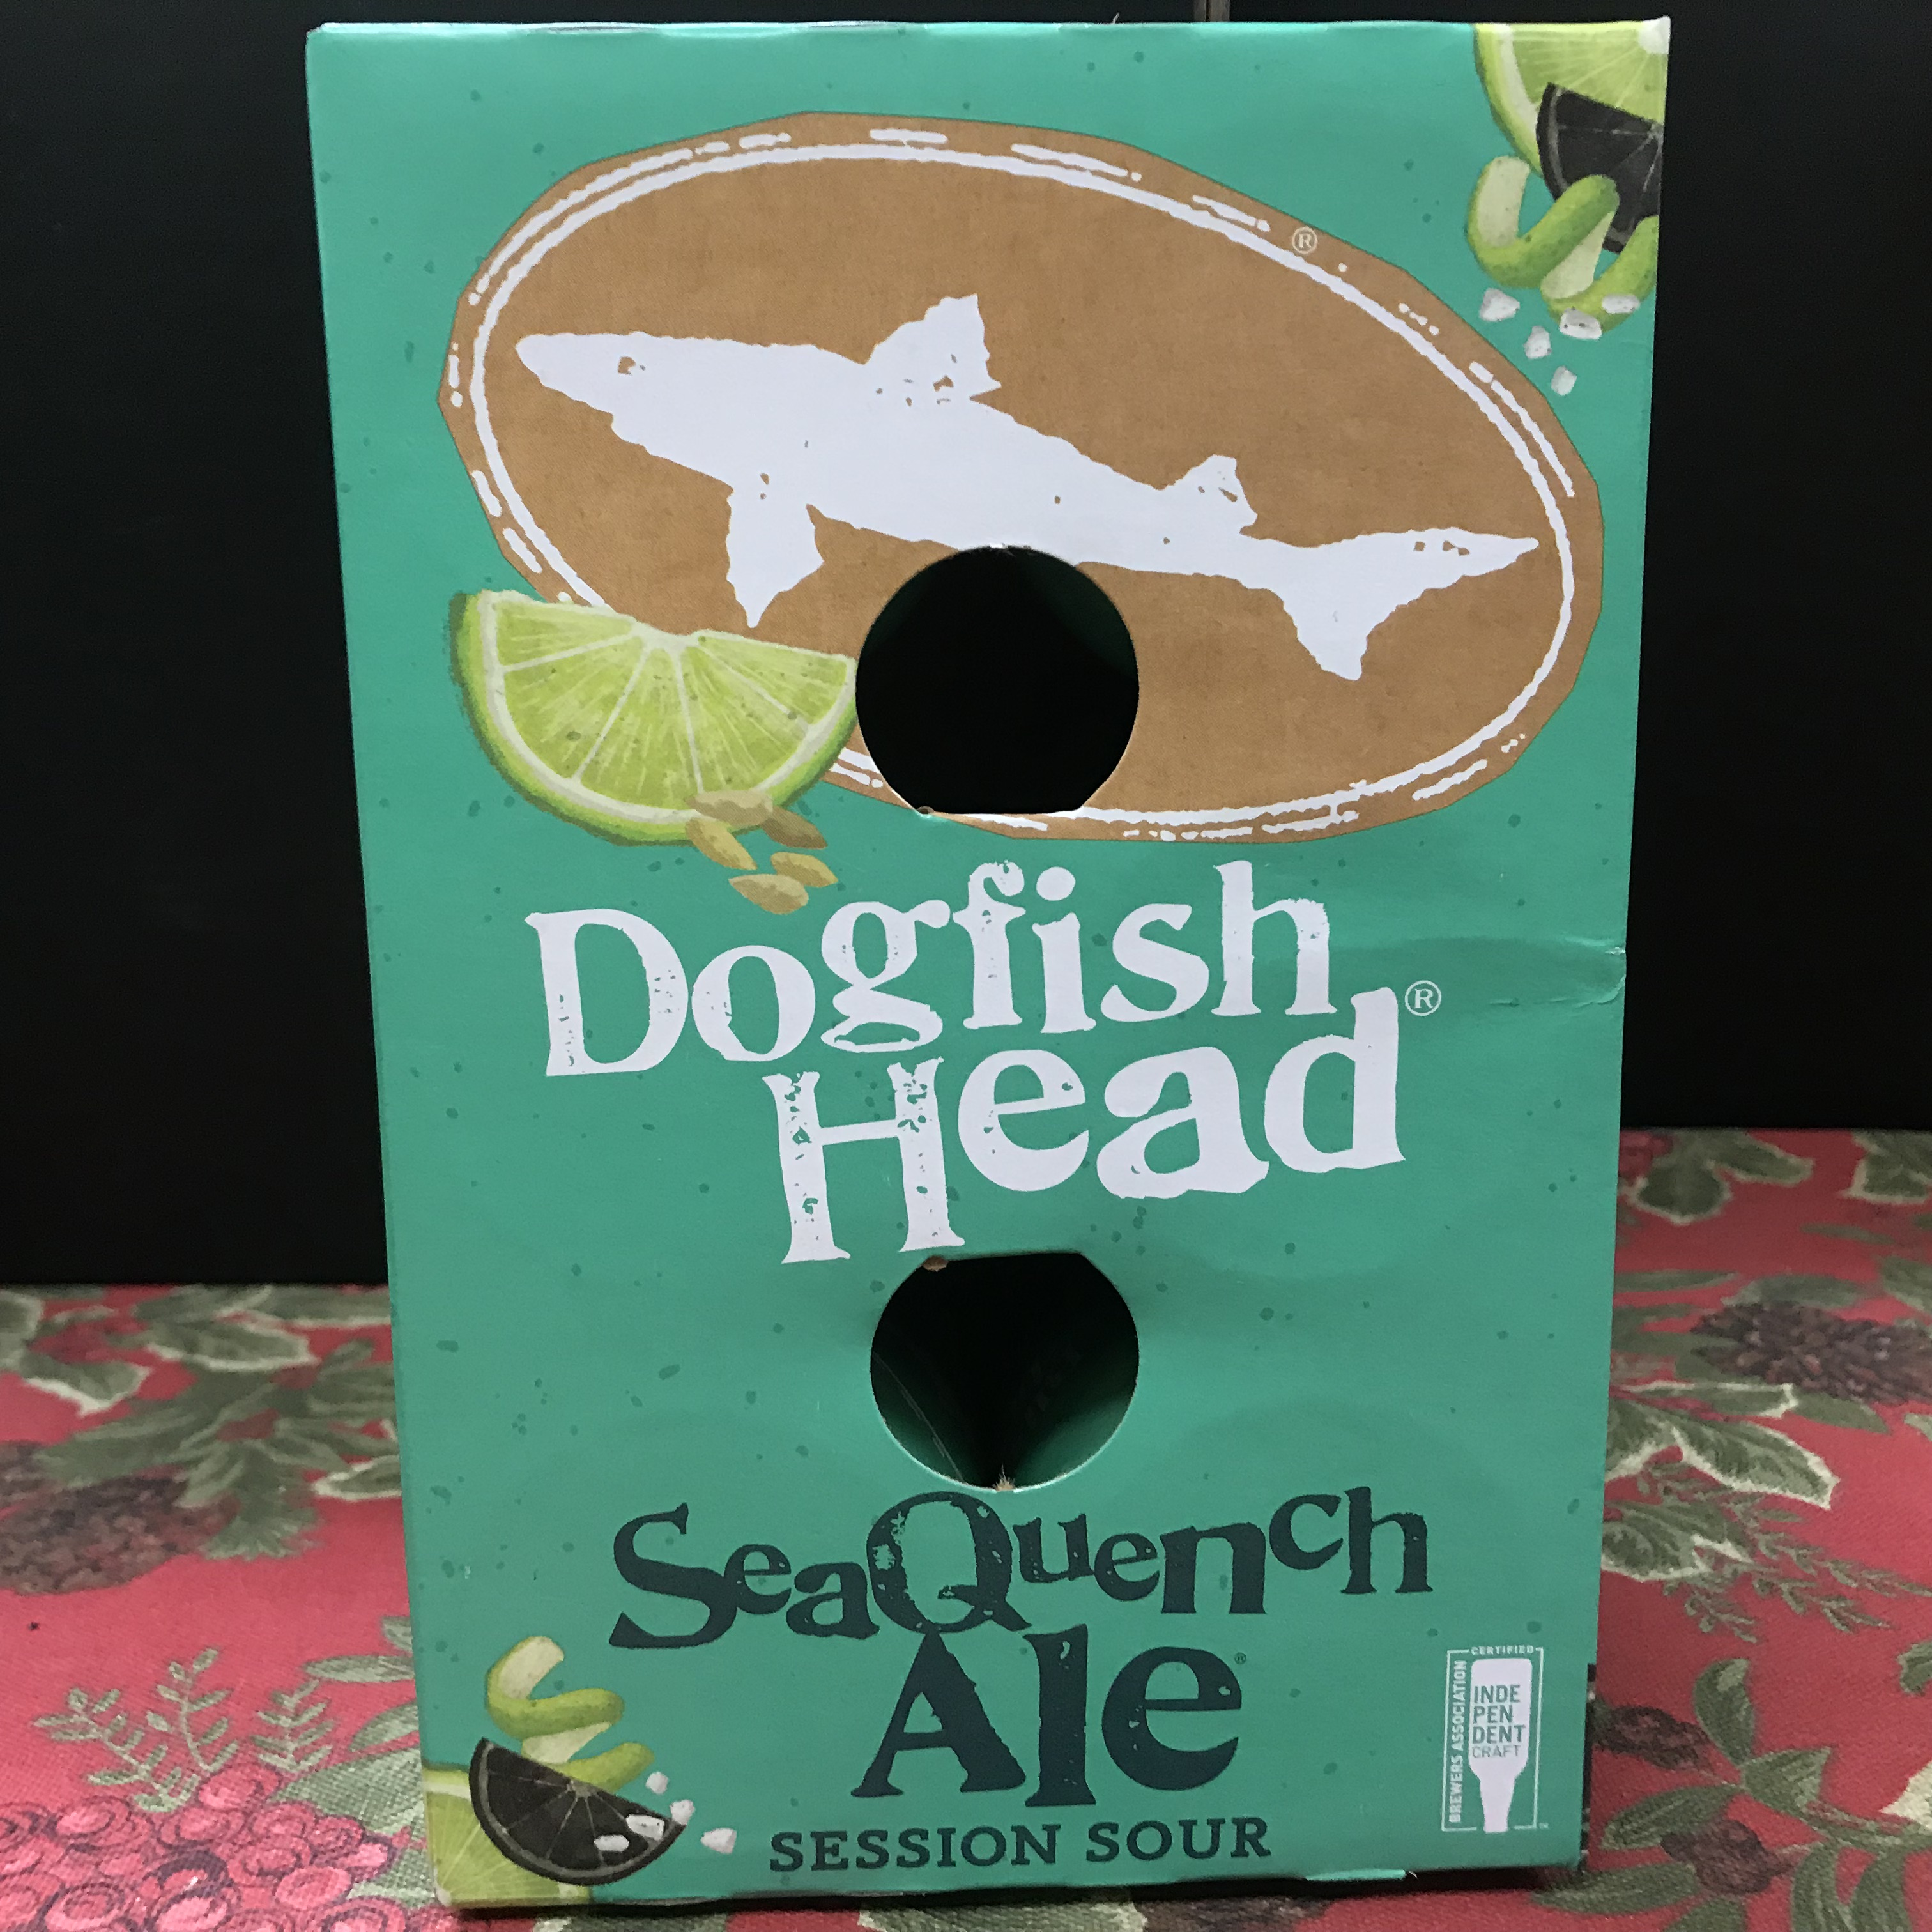 Dogfish Head SeaQuench Session Sour Ale 6 x 12oz cans